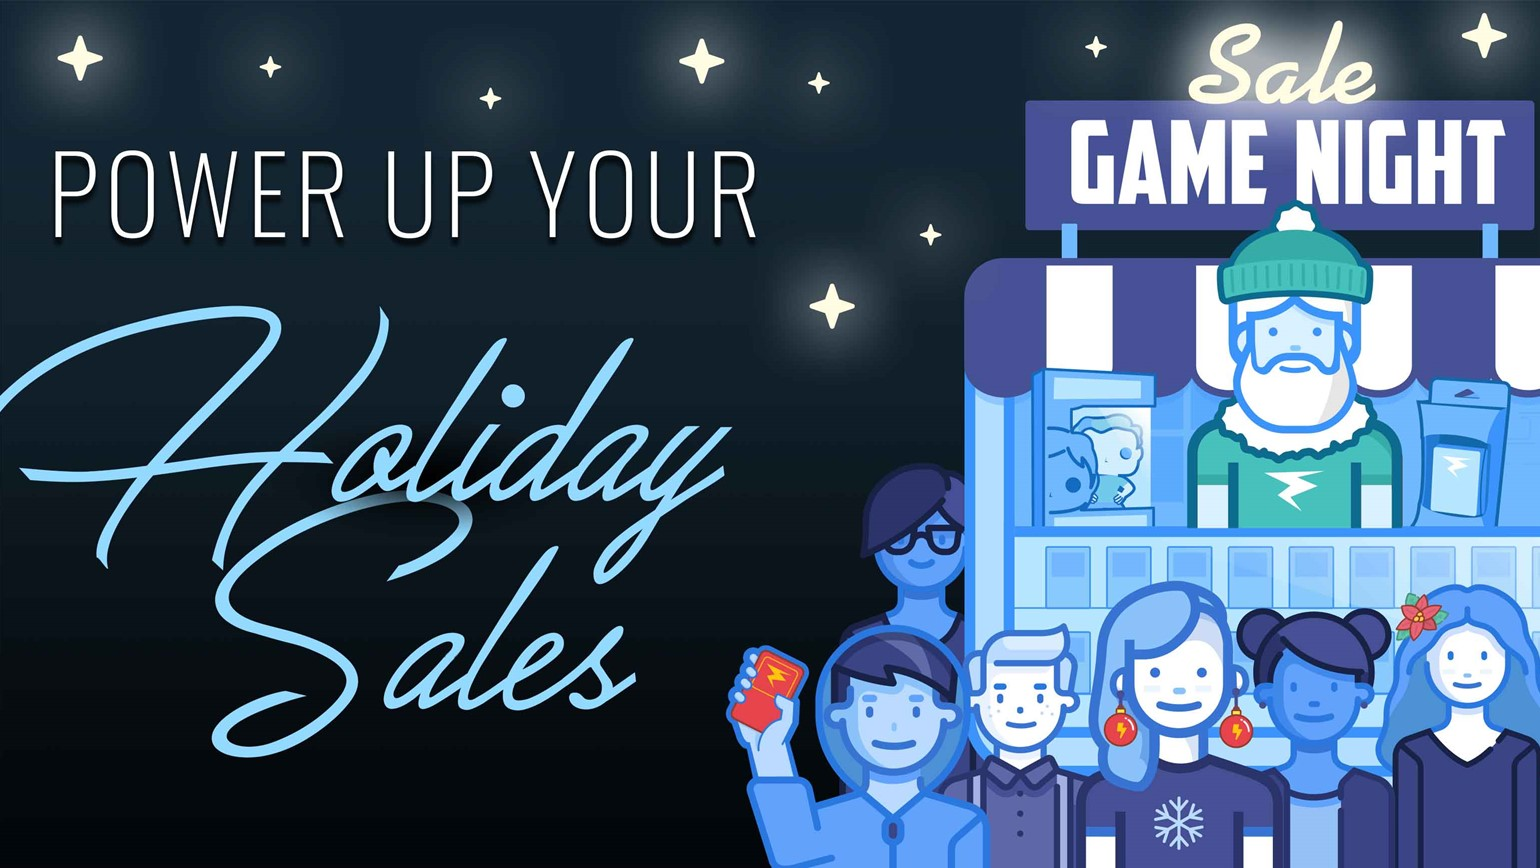 Power Up Your Holiday Sales